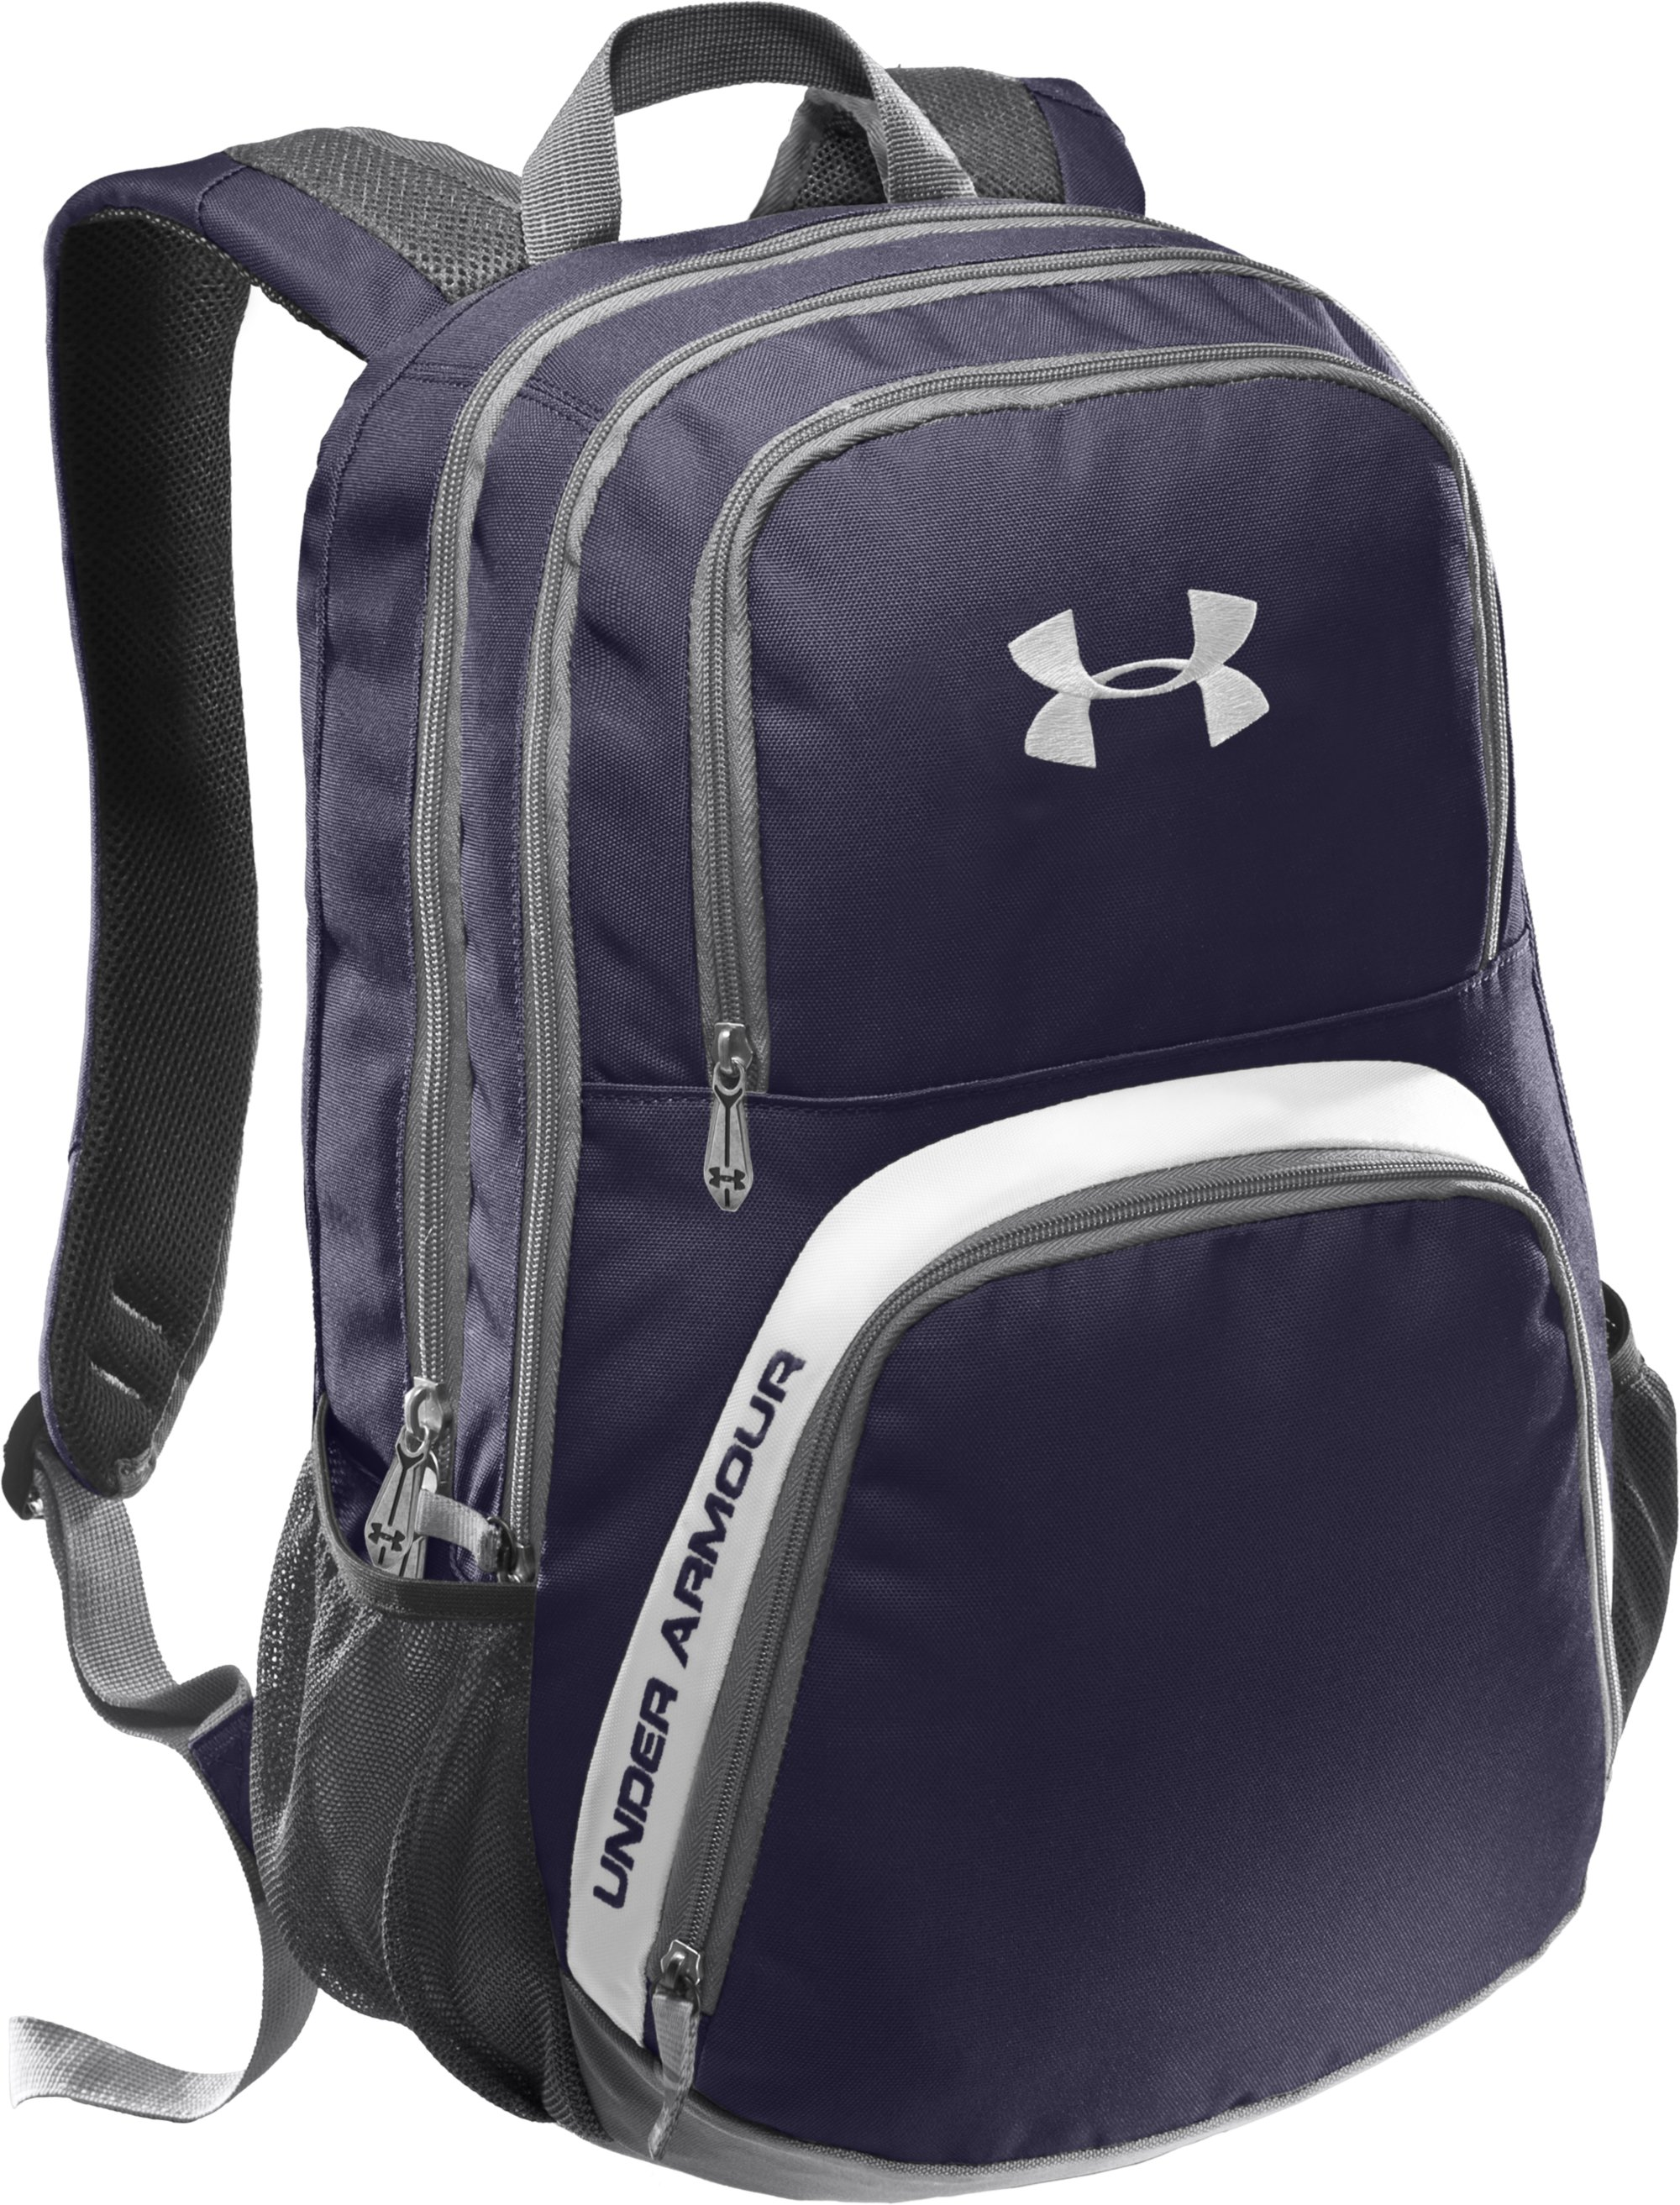 The Best School Backpacks - Crazy Backpacks